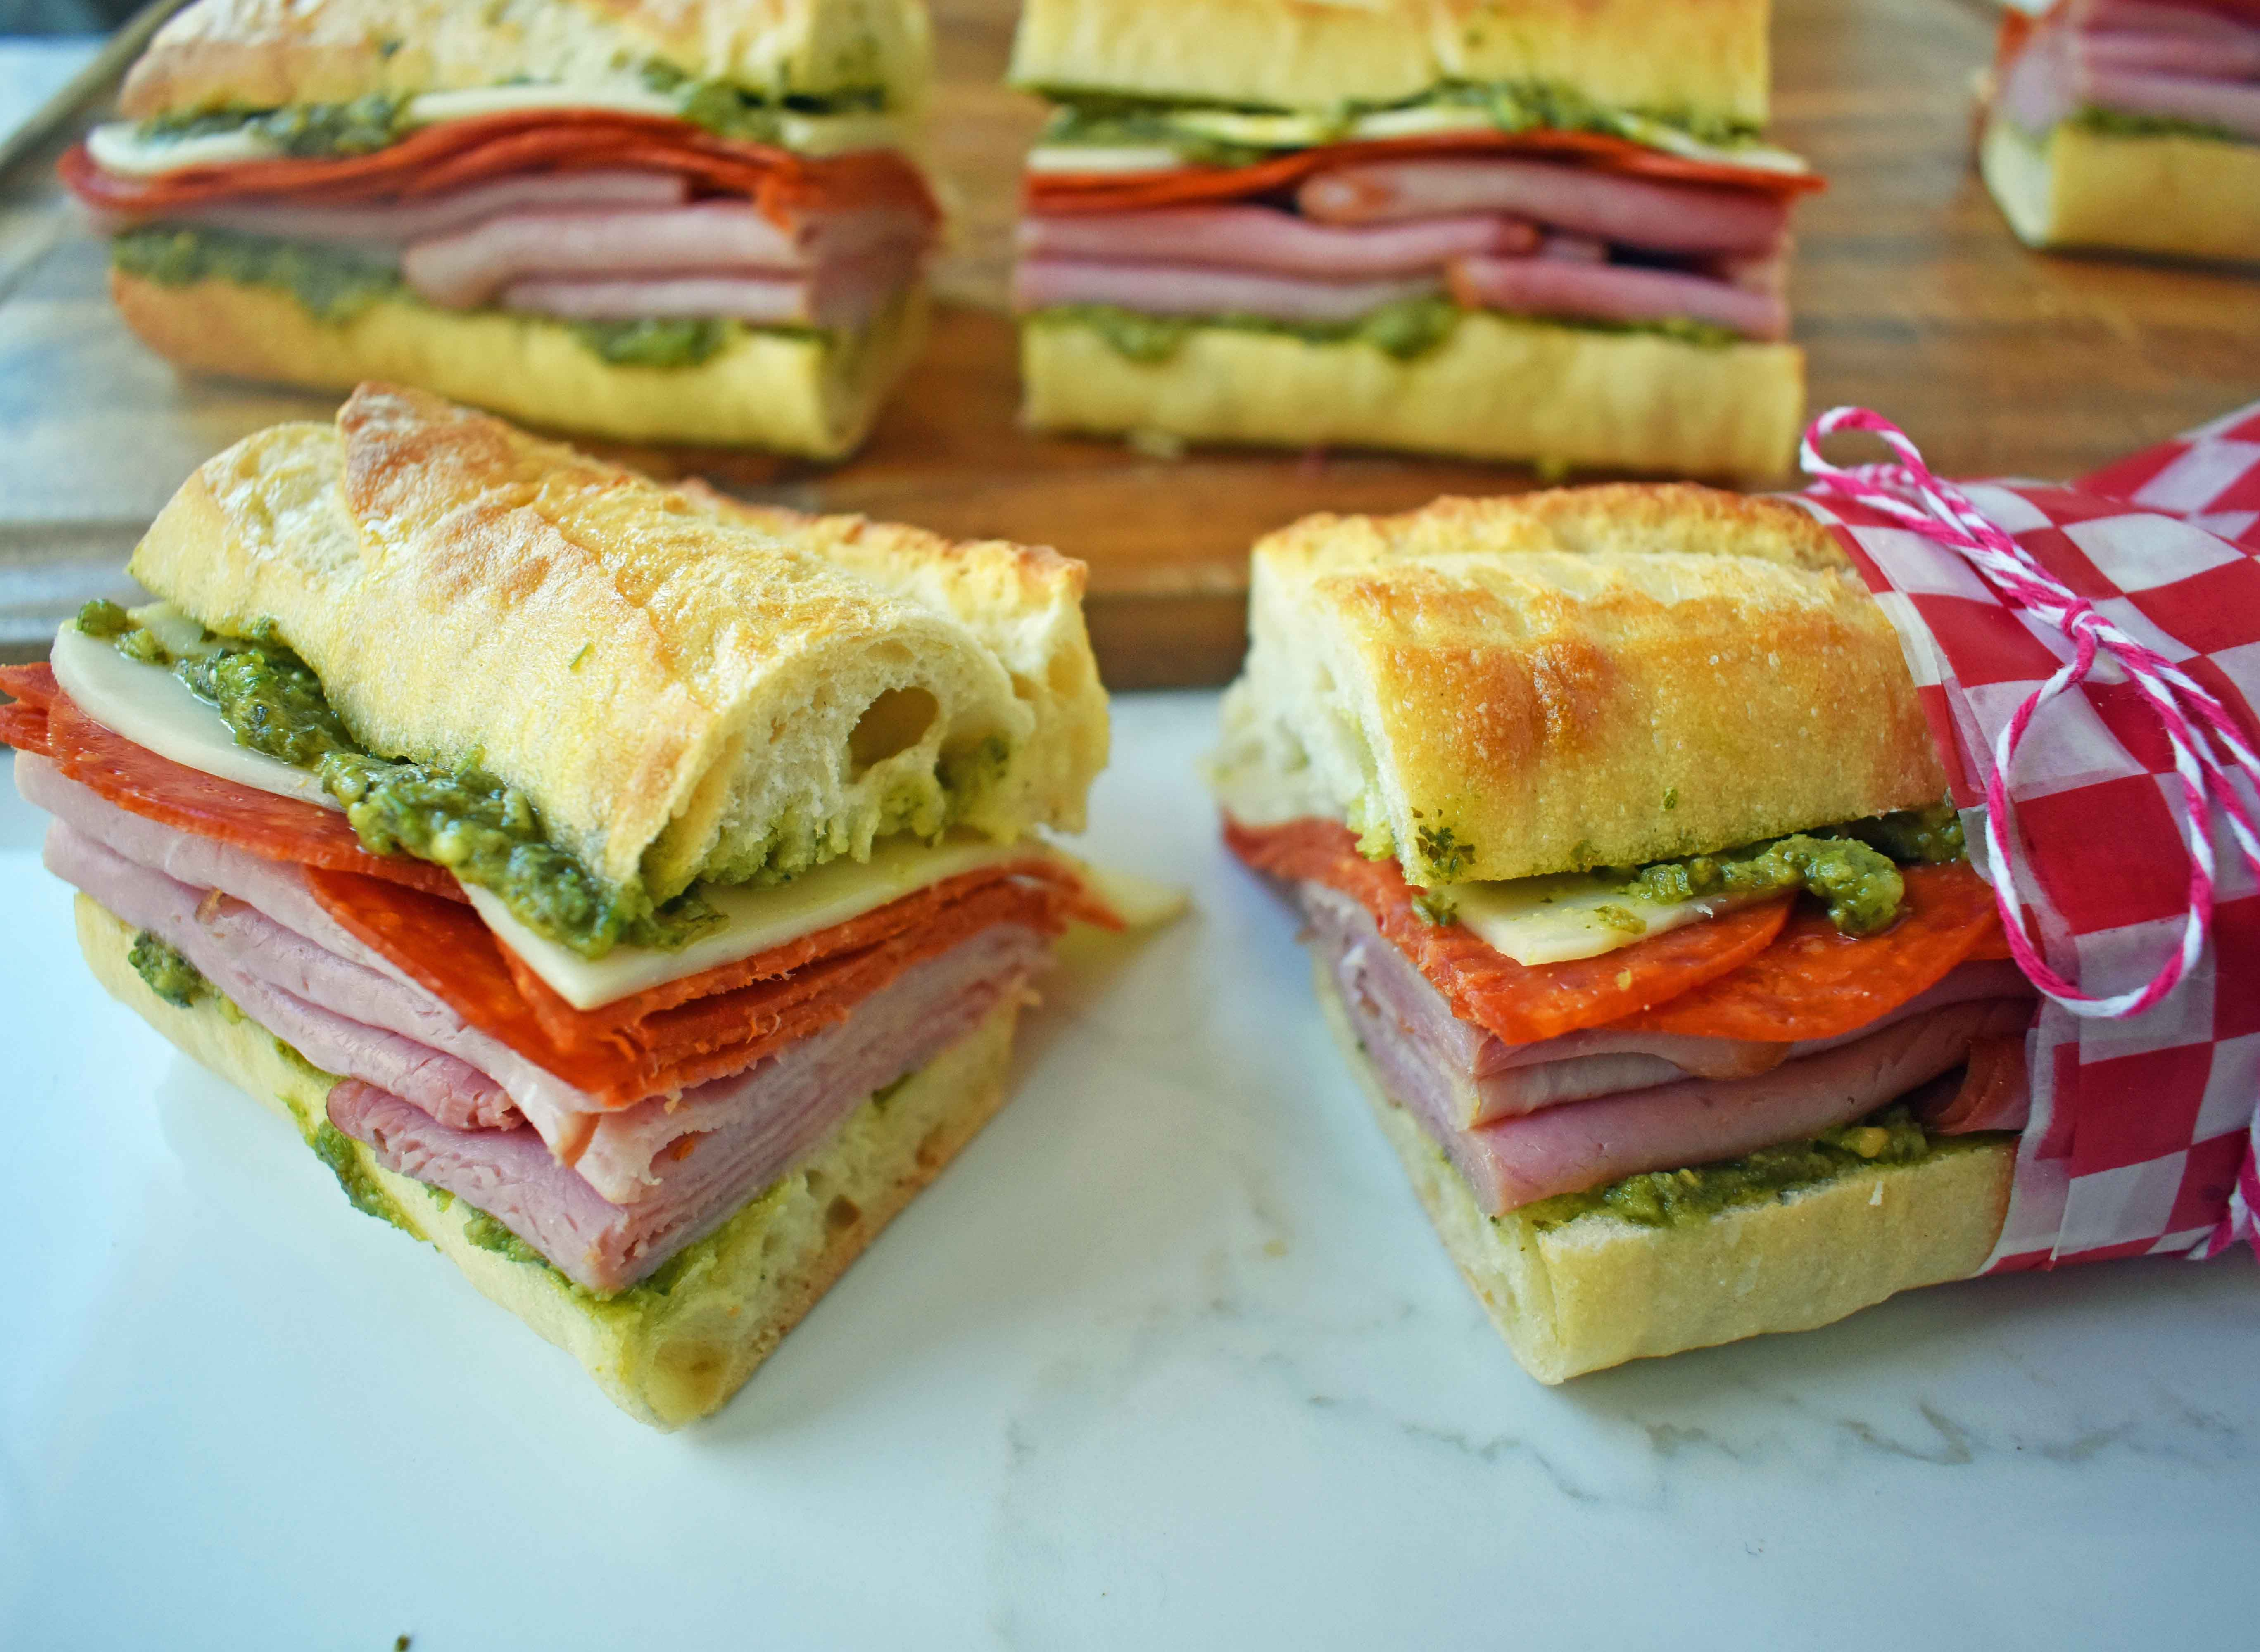 Italian Pressed Sandwiches made with rustic French bread layered with Italian meats and cheeses, pesto sauce or olive oil and vinegar, and marinated tomatoes. This Italian Pressed Sandwich with pesto sauce is perfect for a picnic, kids lunch, or for a casual lunch. www.modernhoney.com